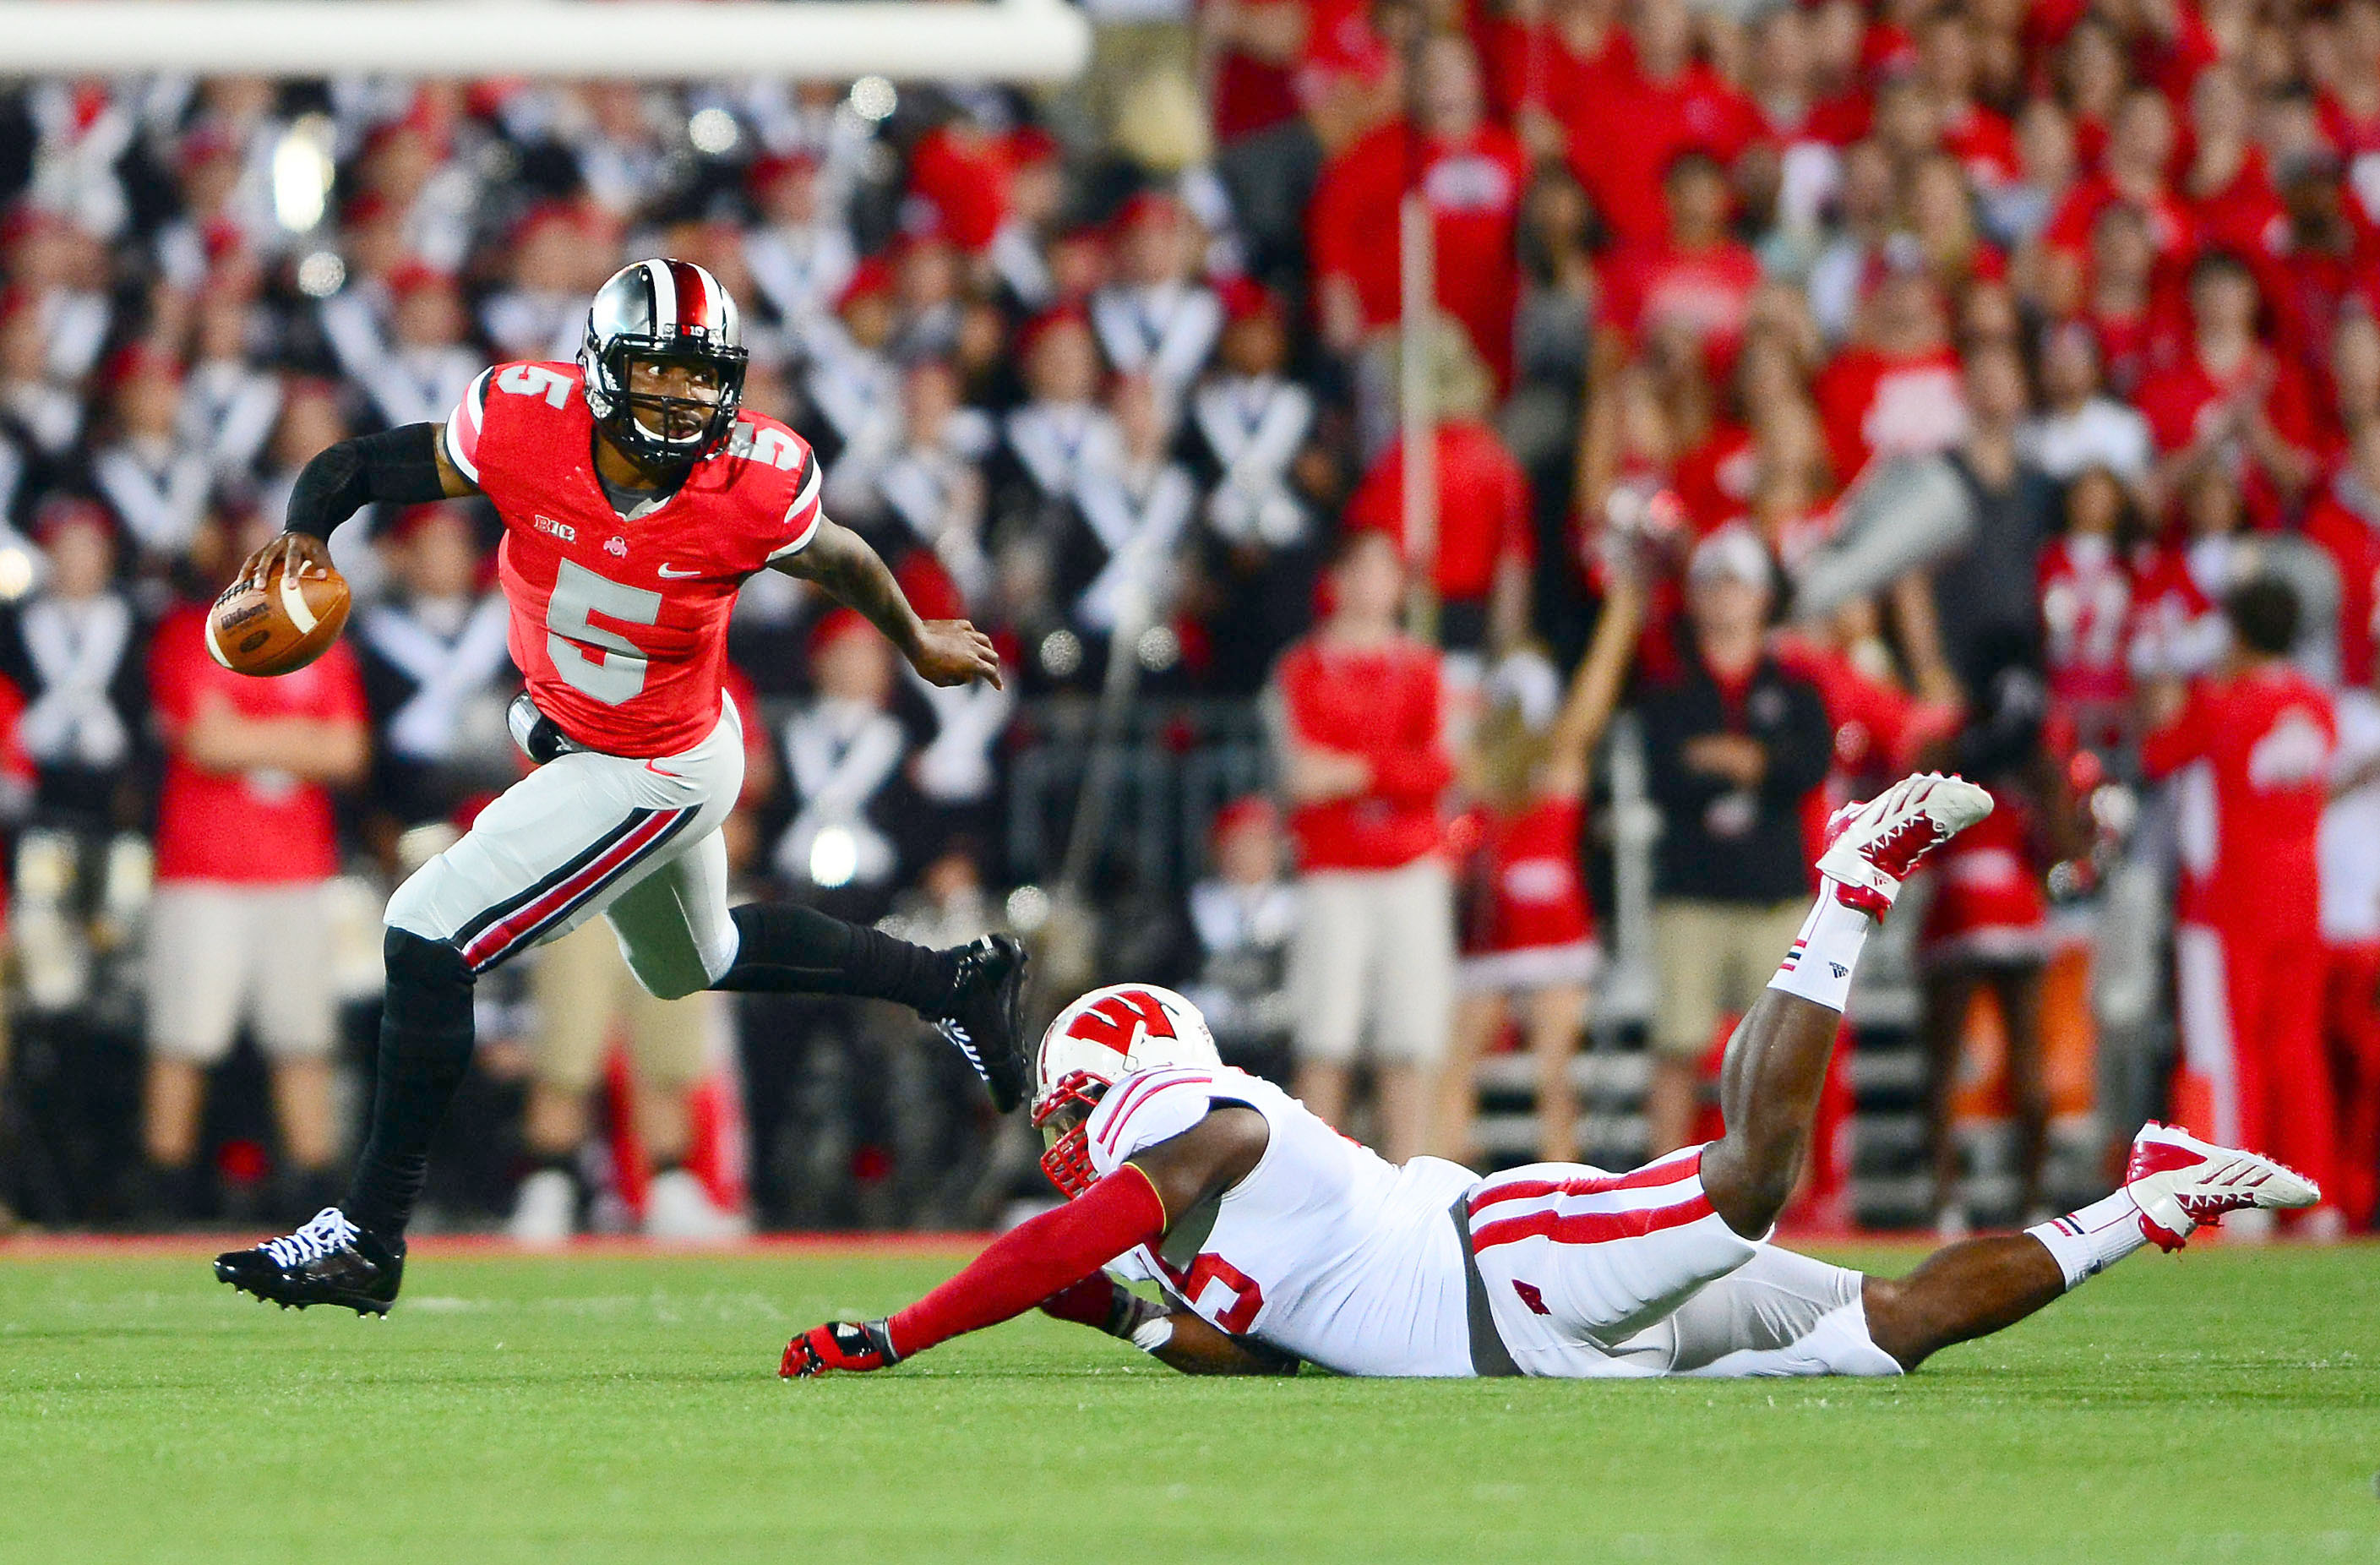 Ohio State Buckeyes quarterback Braxton Miller (5) escapes a Wisconsin Badgers defender during the first quarter at Ohio Stadium. Mandatory Credit: Andrew Weber-USA TODAY Sports